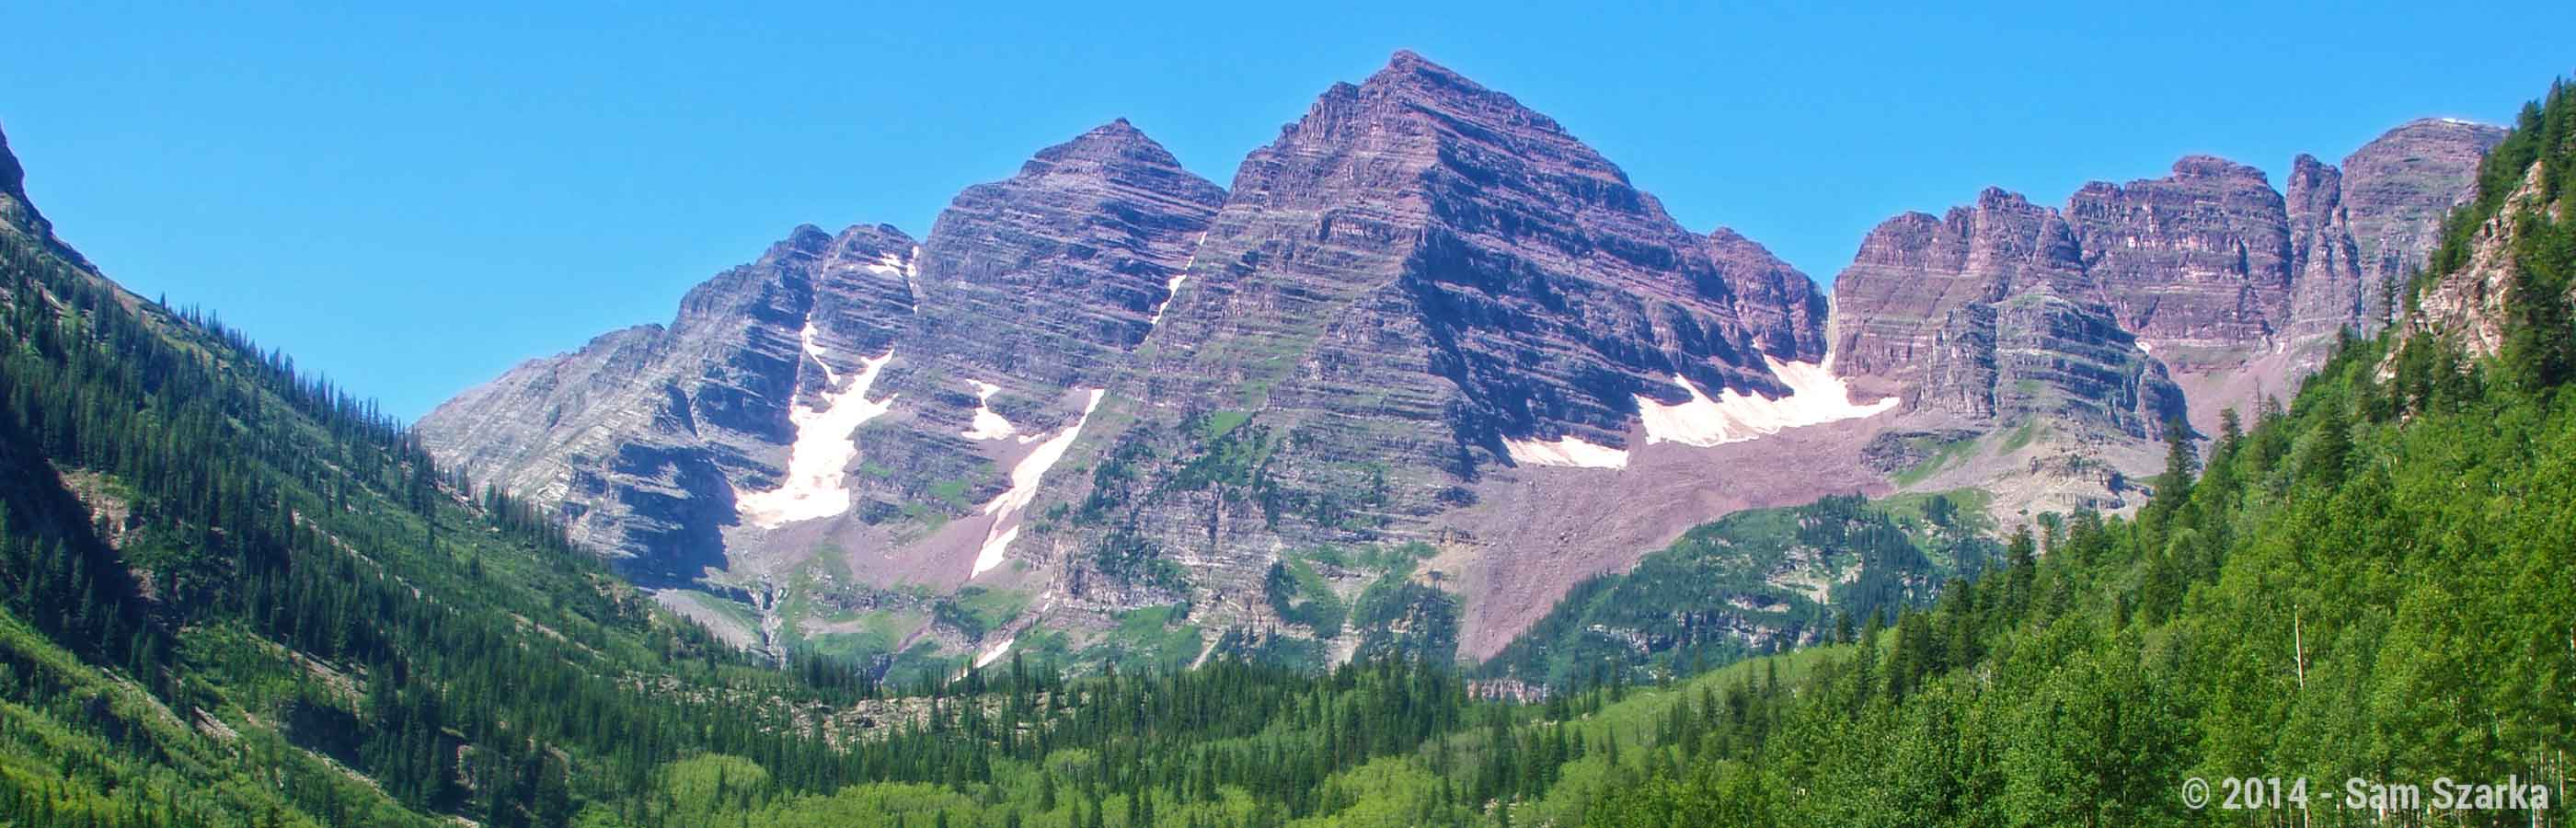 Maroon Bells Snowmass Wilderness | Colorado's Wild Areas